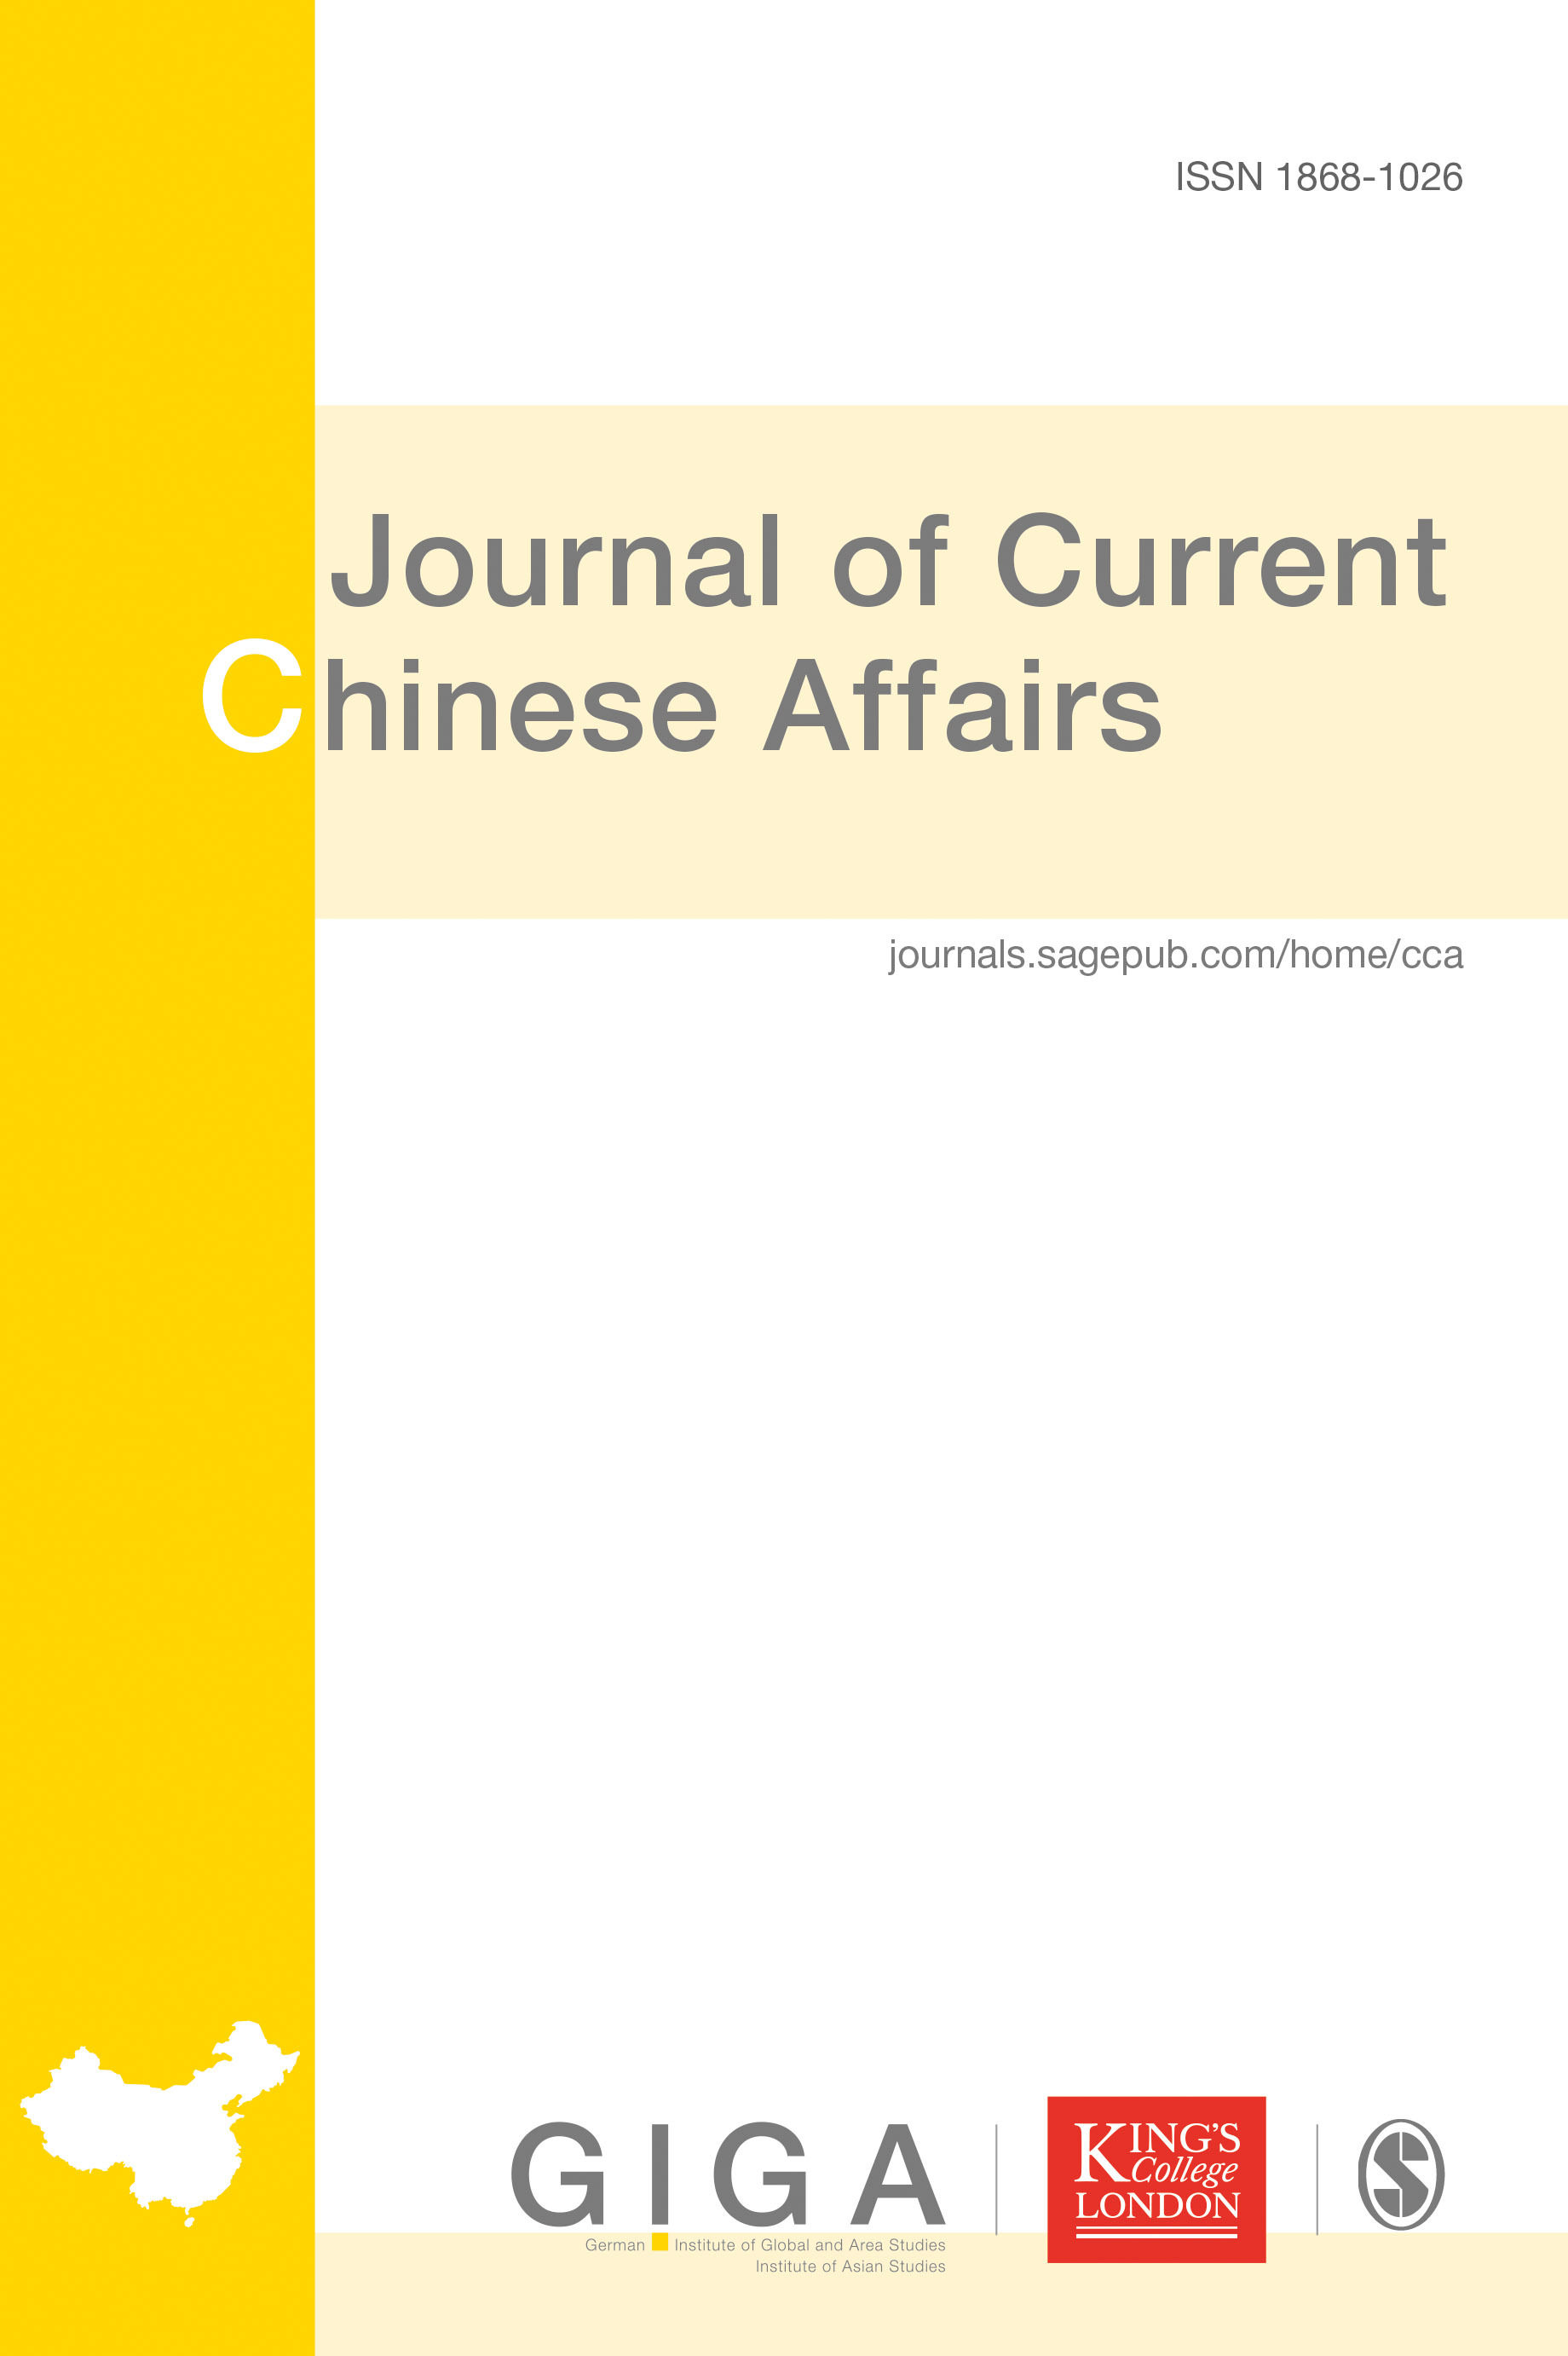 Journal of Current Chinese Affairs